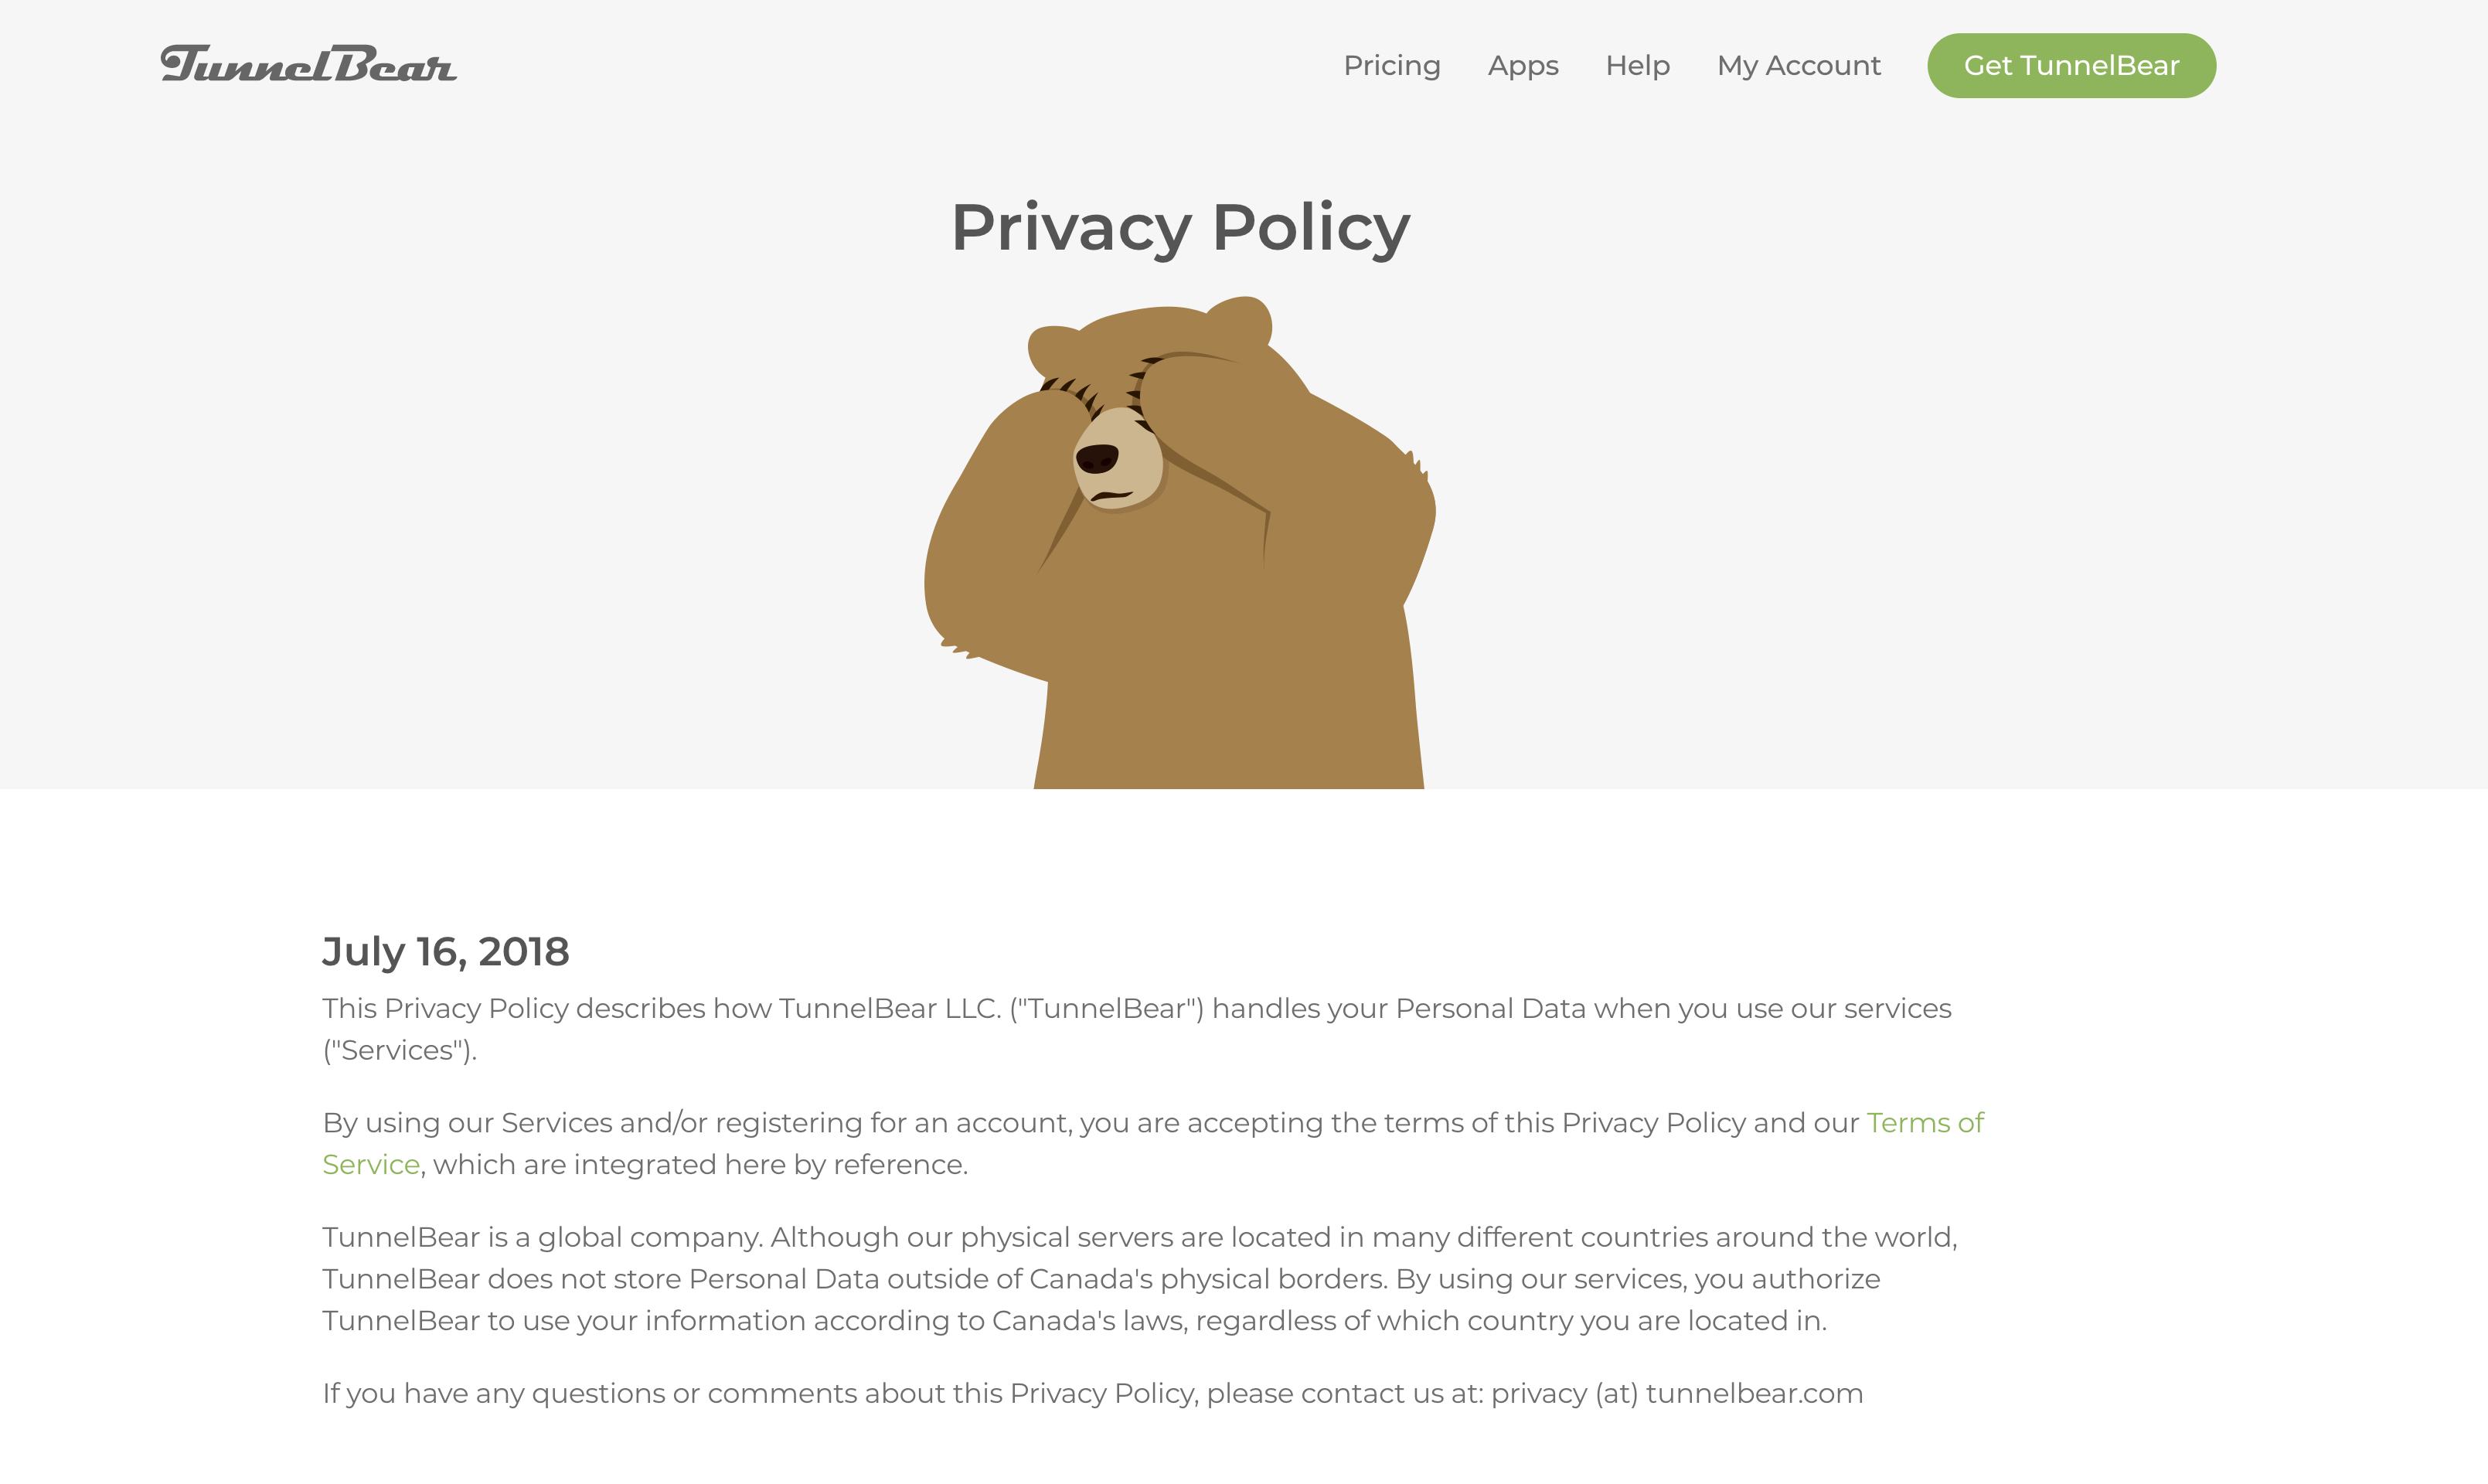 Excerpt from TunnelBear Privacy Policy from the TunnelBear Website